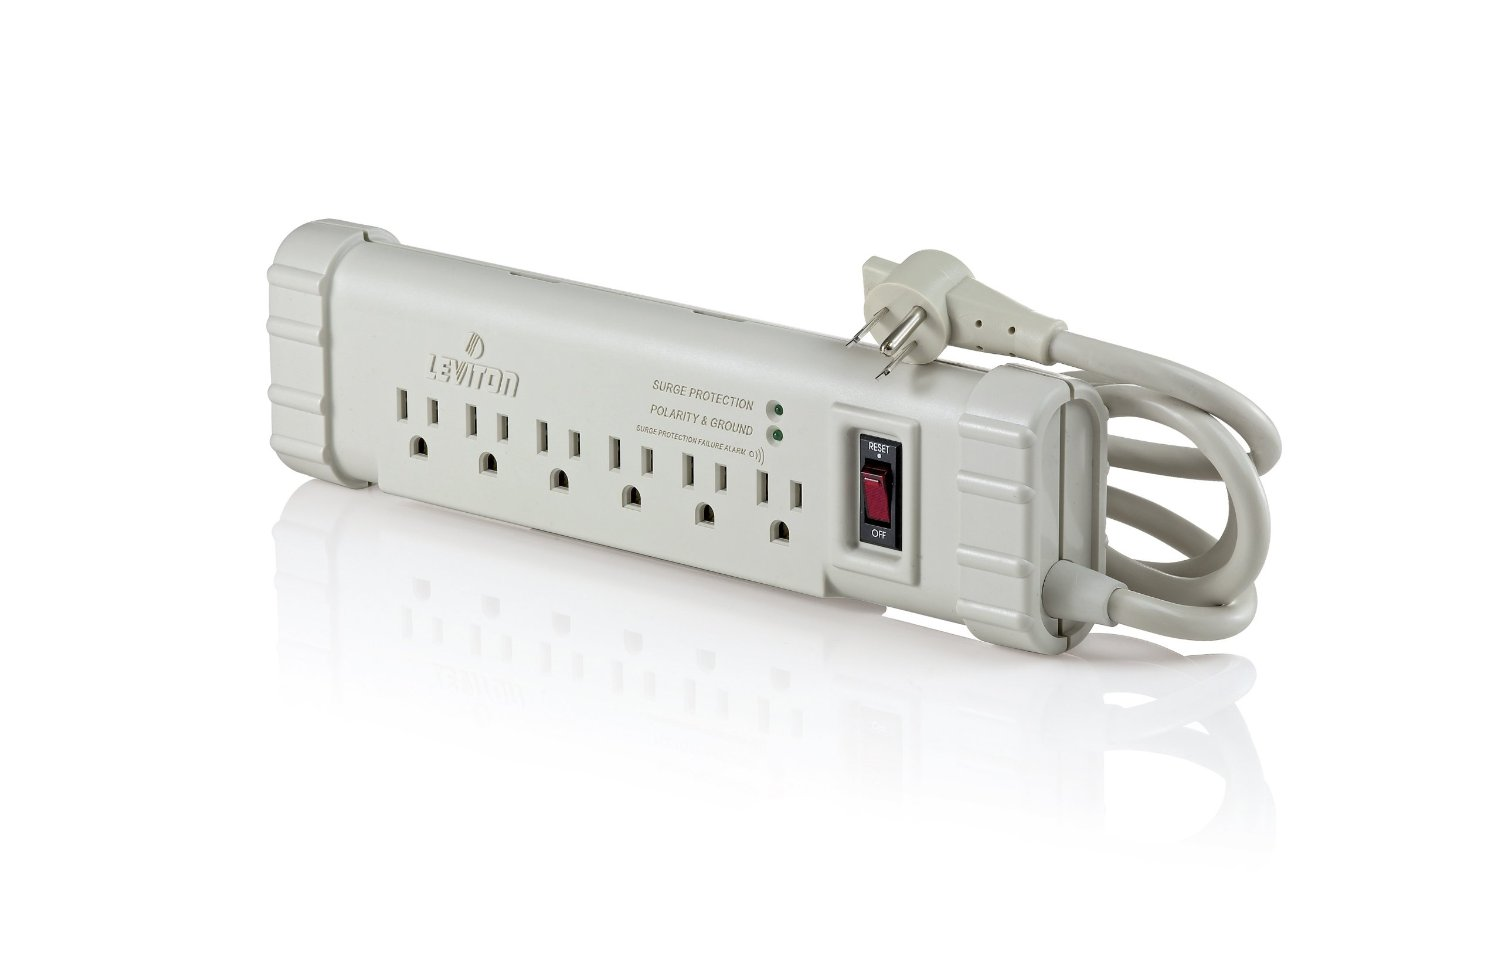 Cheap Leviton Power Strip, find Leviton Power Strip deals on line at ...